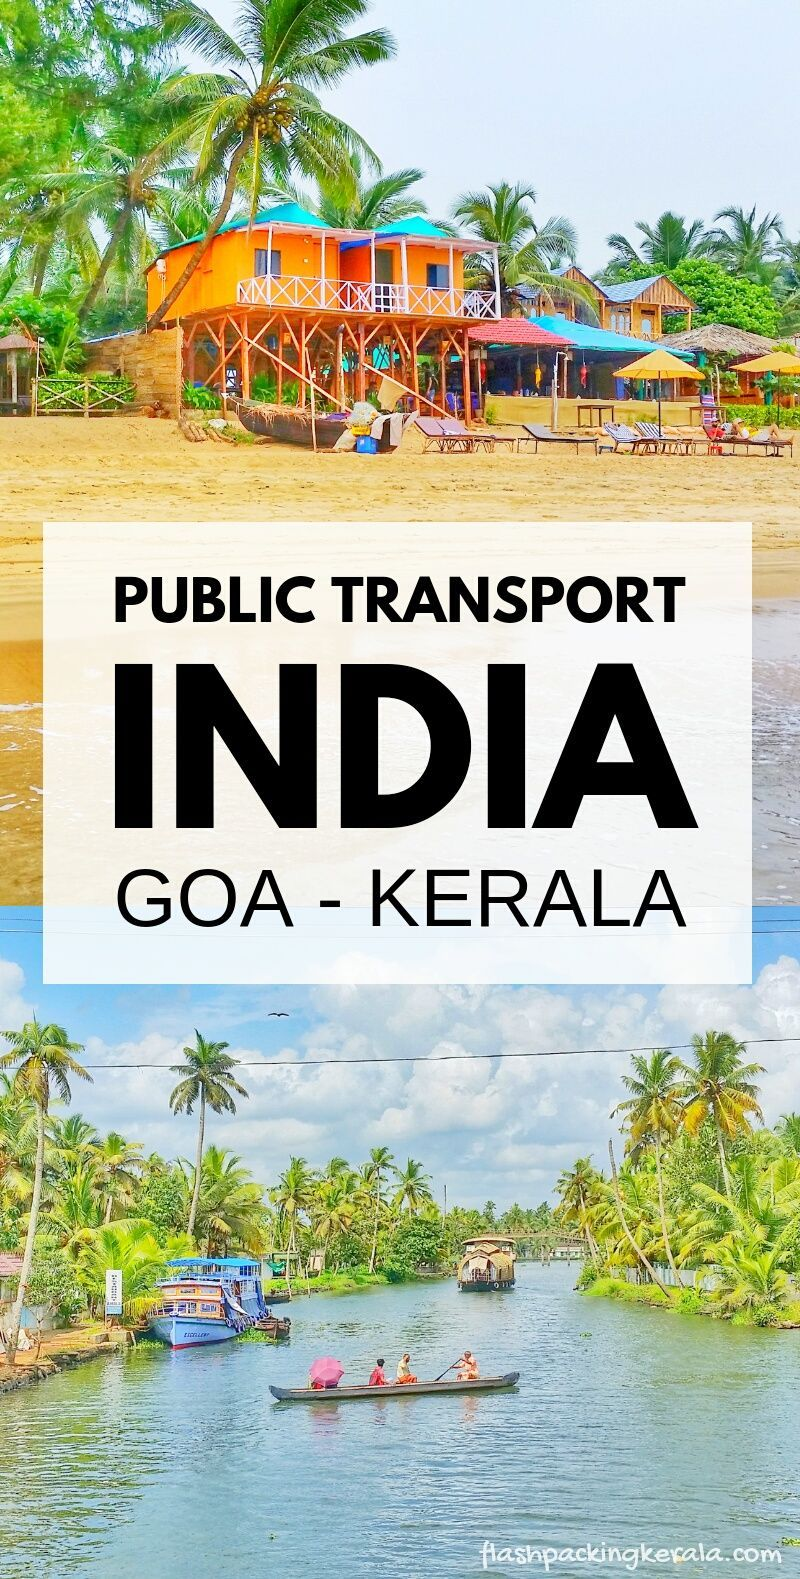 south india kerala travel guide pdf